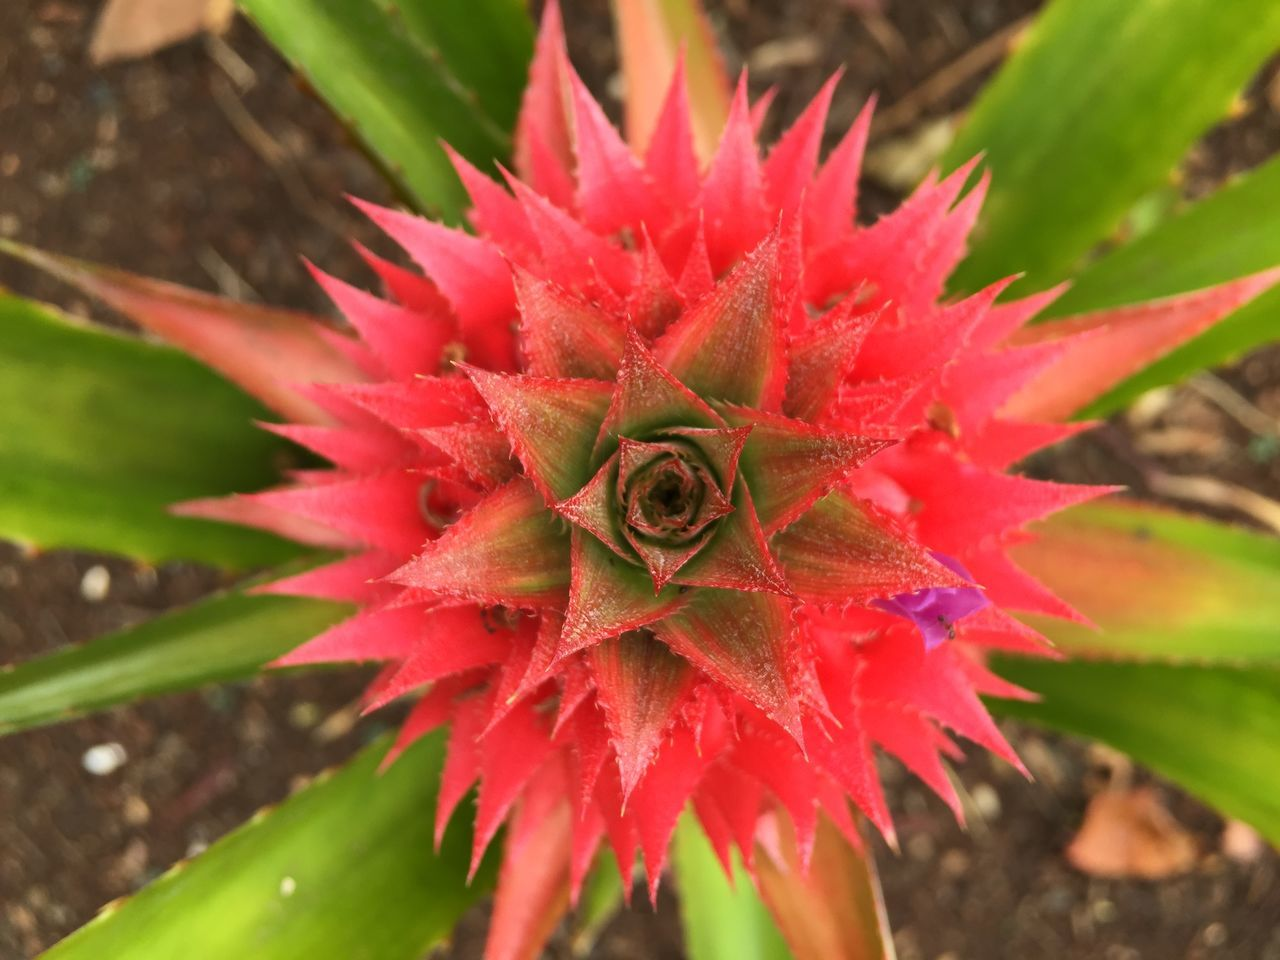 Pineapple Spanish Pineapple Pink Tropical Fruits IPhoneography